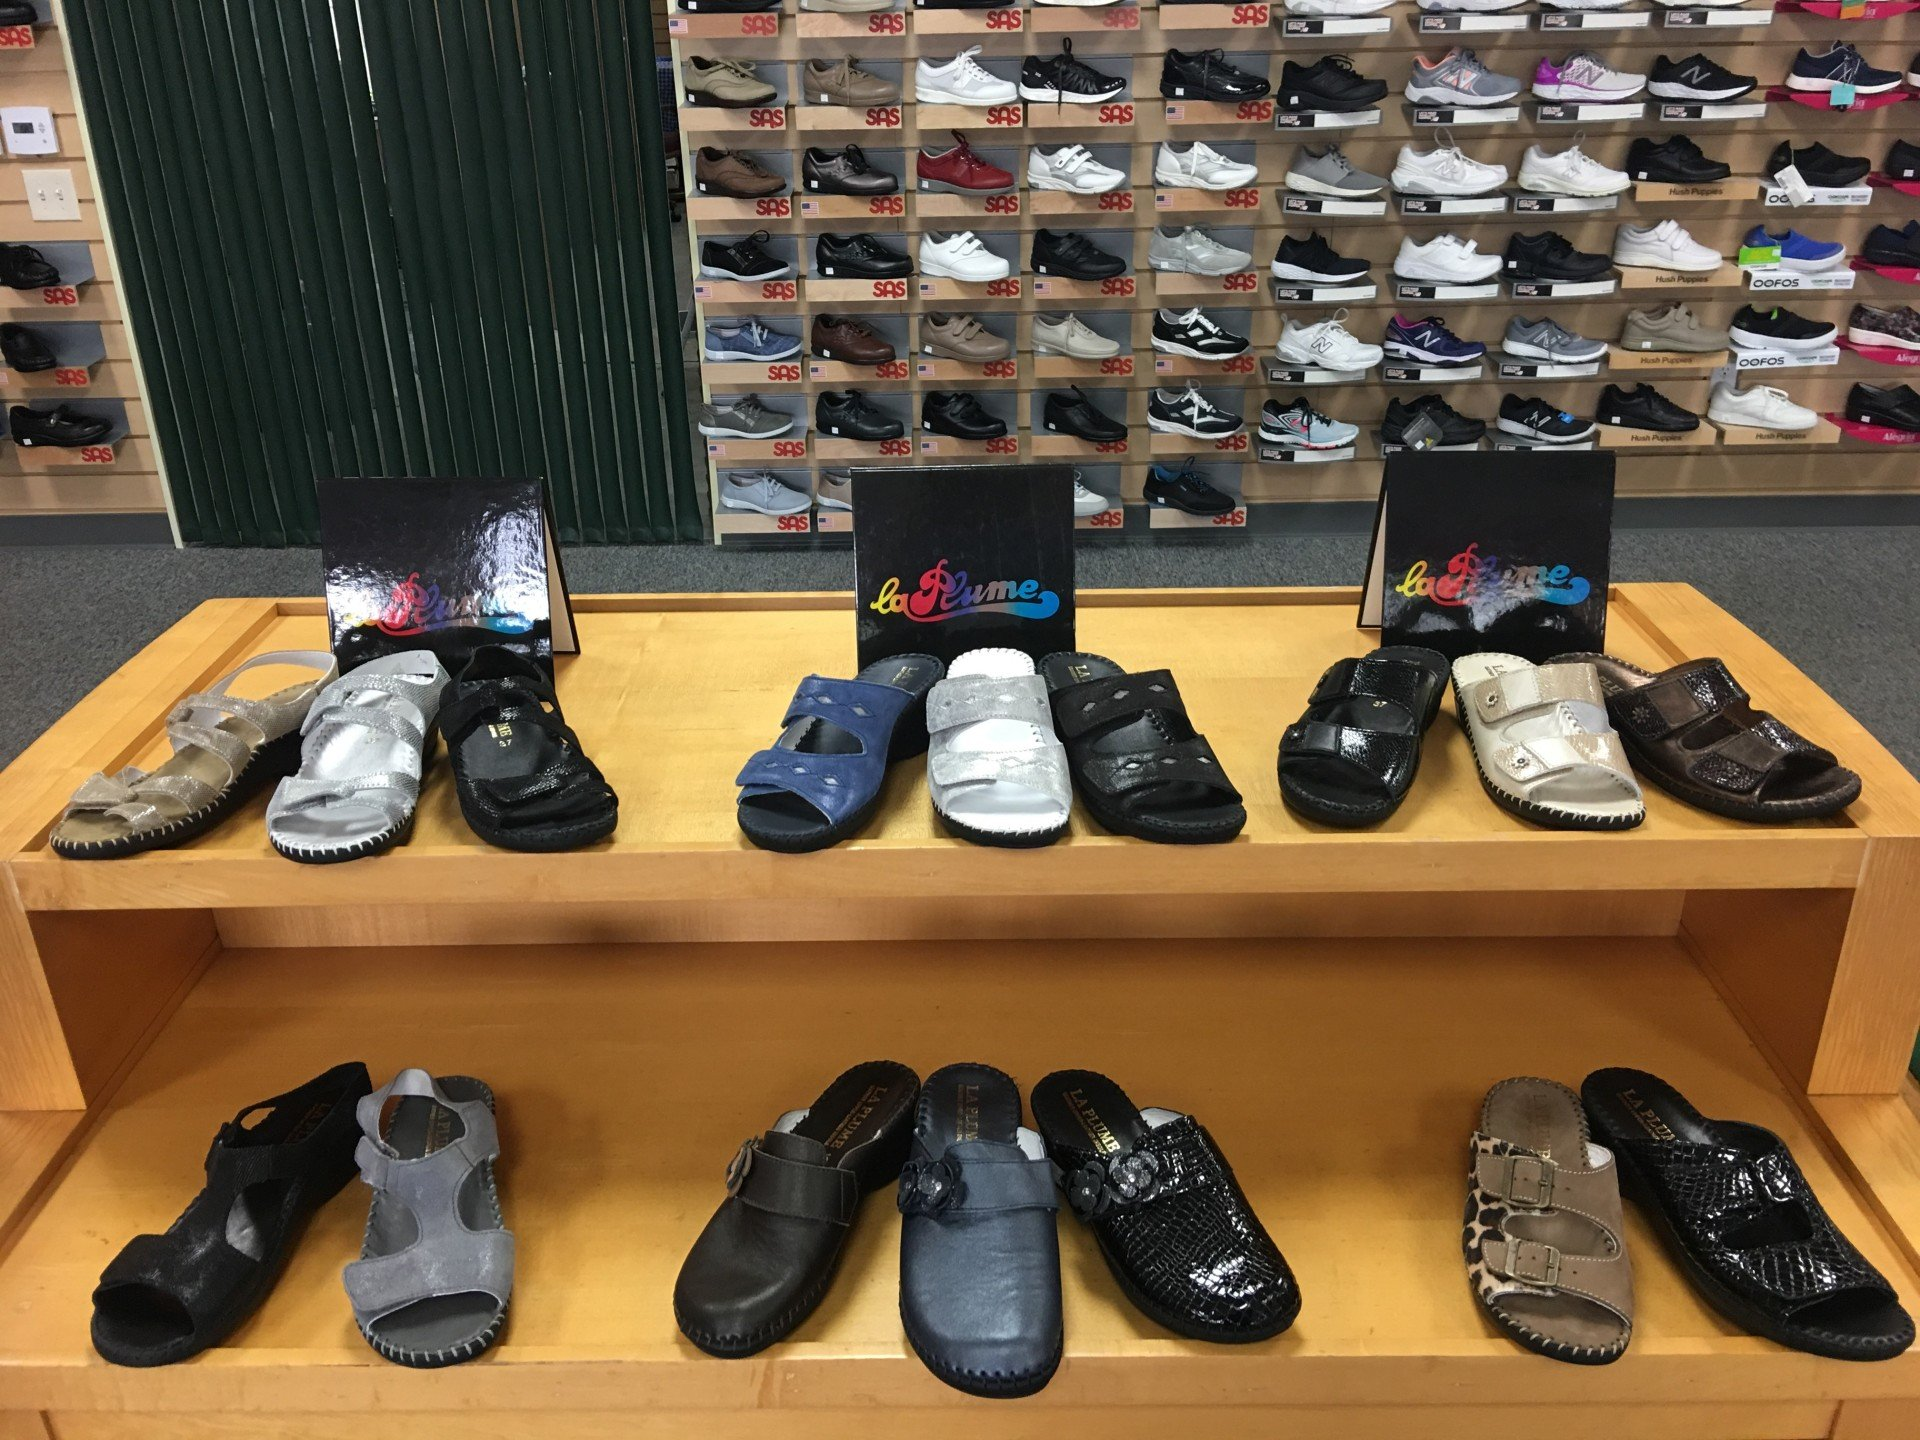 info for 8bb6d 089b5 Walking Shoes - La Habra, CA - Whittwood Shoes